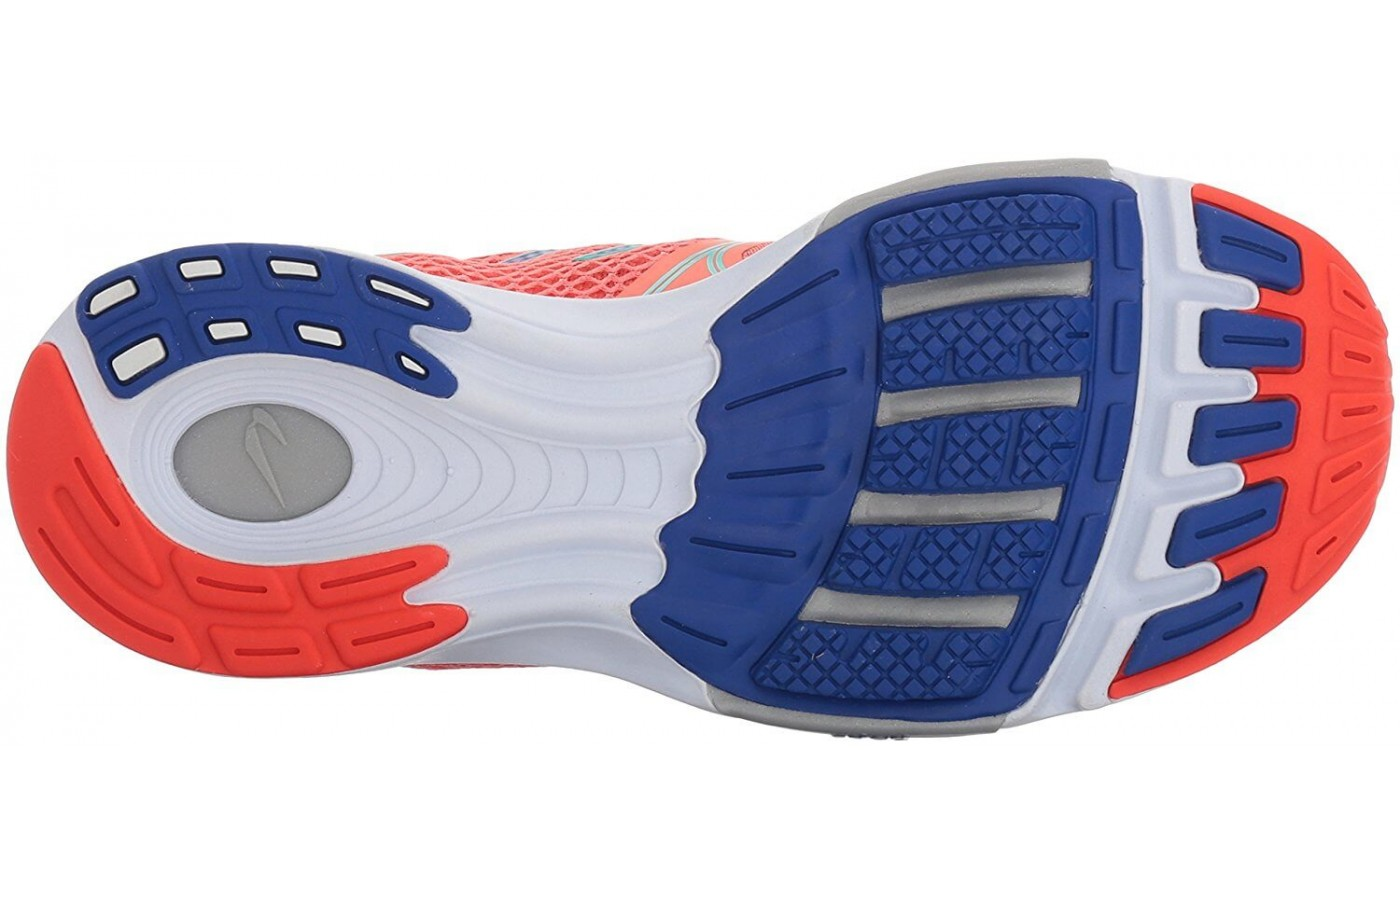 The outsole features five action / reaction forefoot lugs